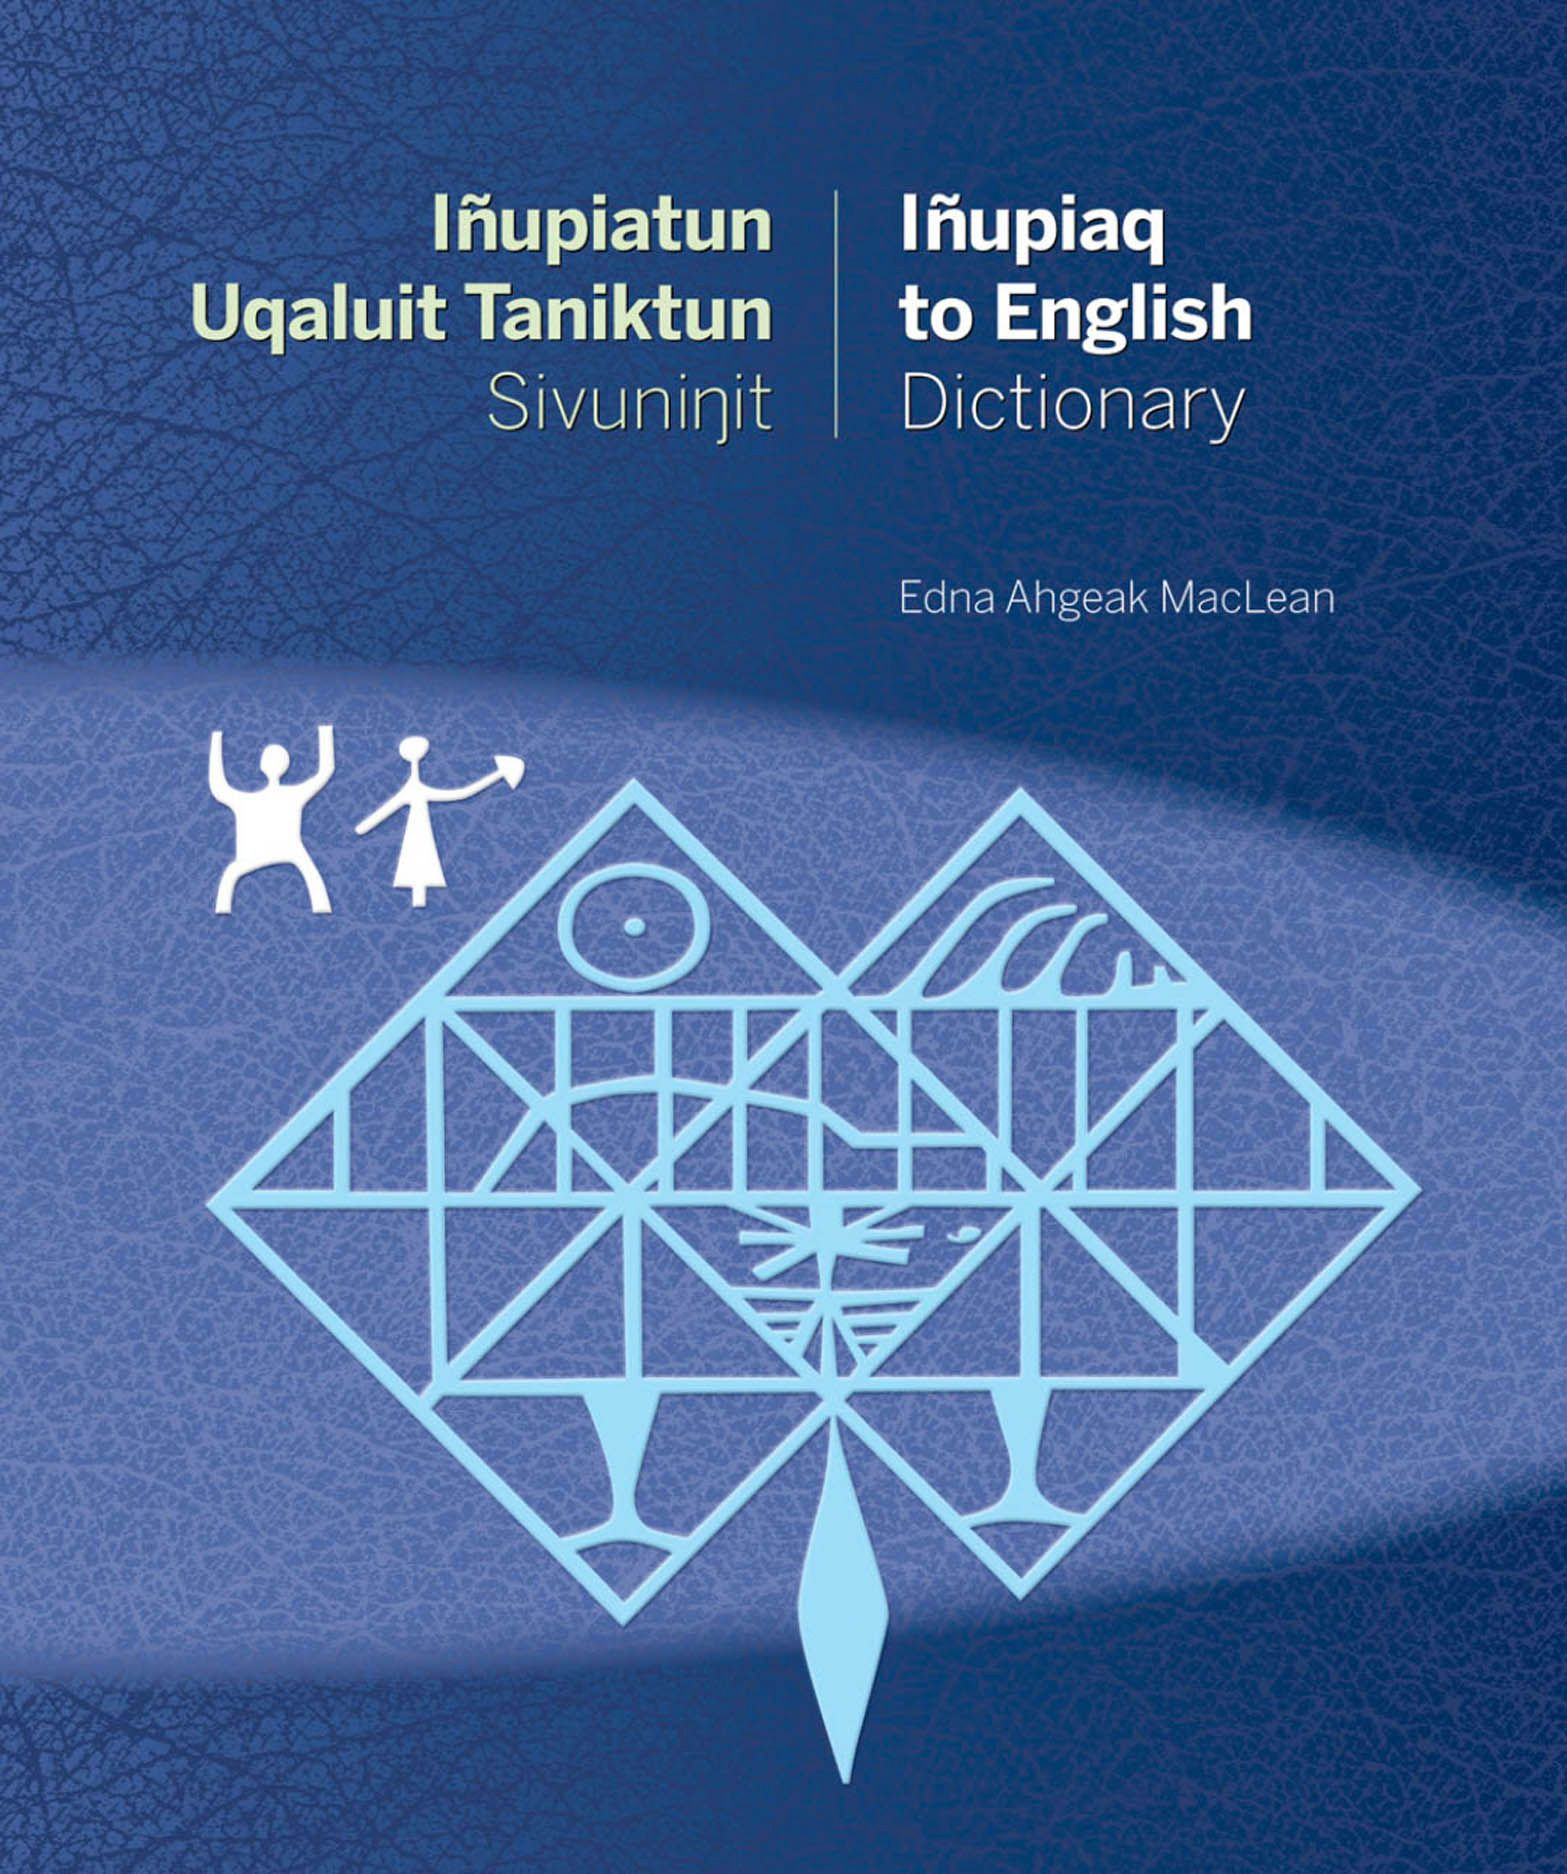 Iñupiatun Uqaluit Taniktun Sivuninit/Iñupiaq to English Dictionary